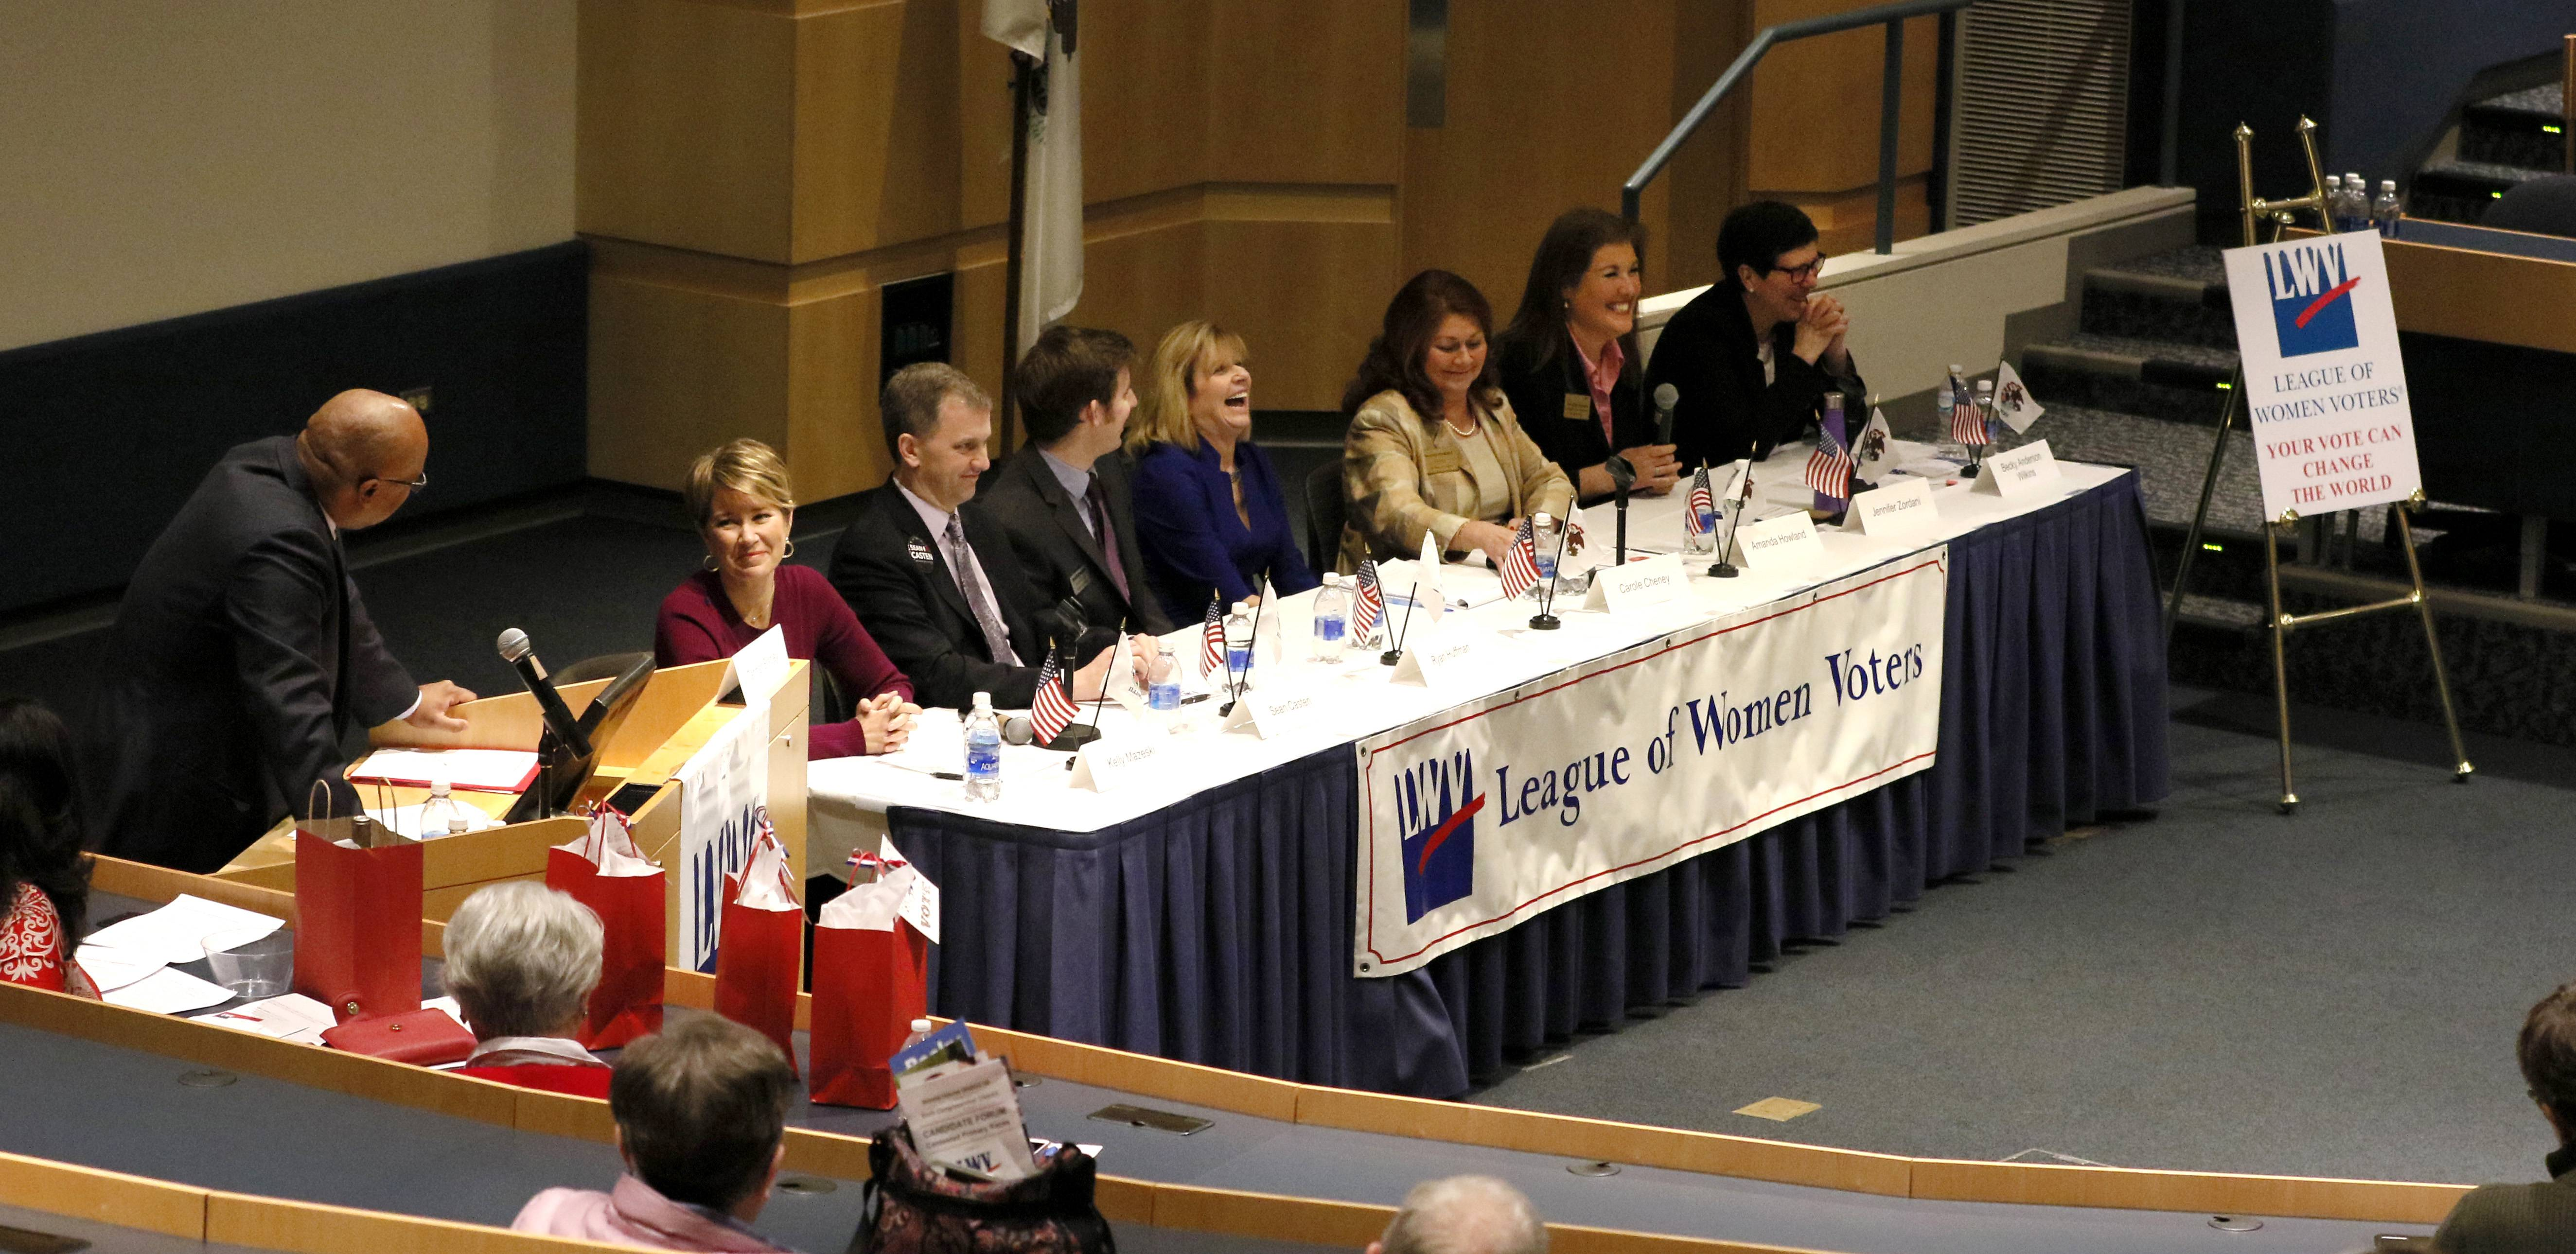 Democratic candidates vying for the party nod in the 6th Congressional District primary spent most of the time at Saturday's League of Women Voters forum at Harper College taking jabs at incumbent Republican Peter Roskam than at each other.